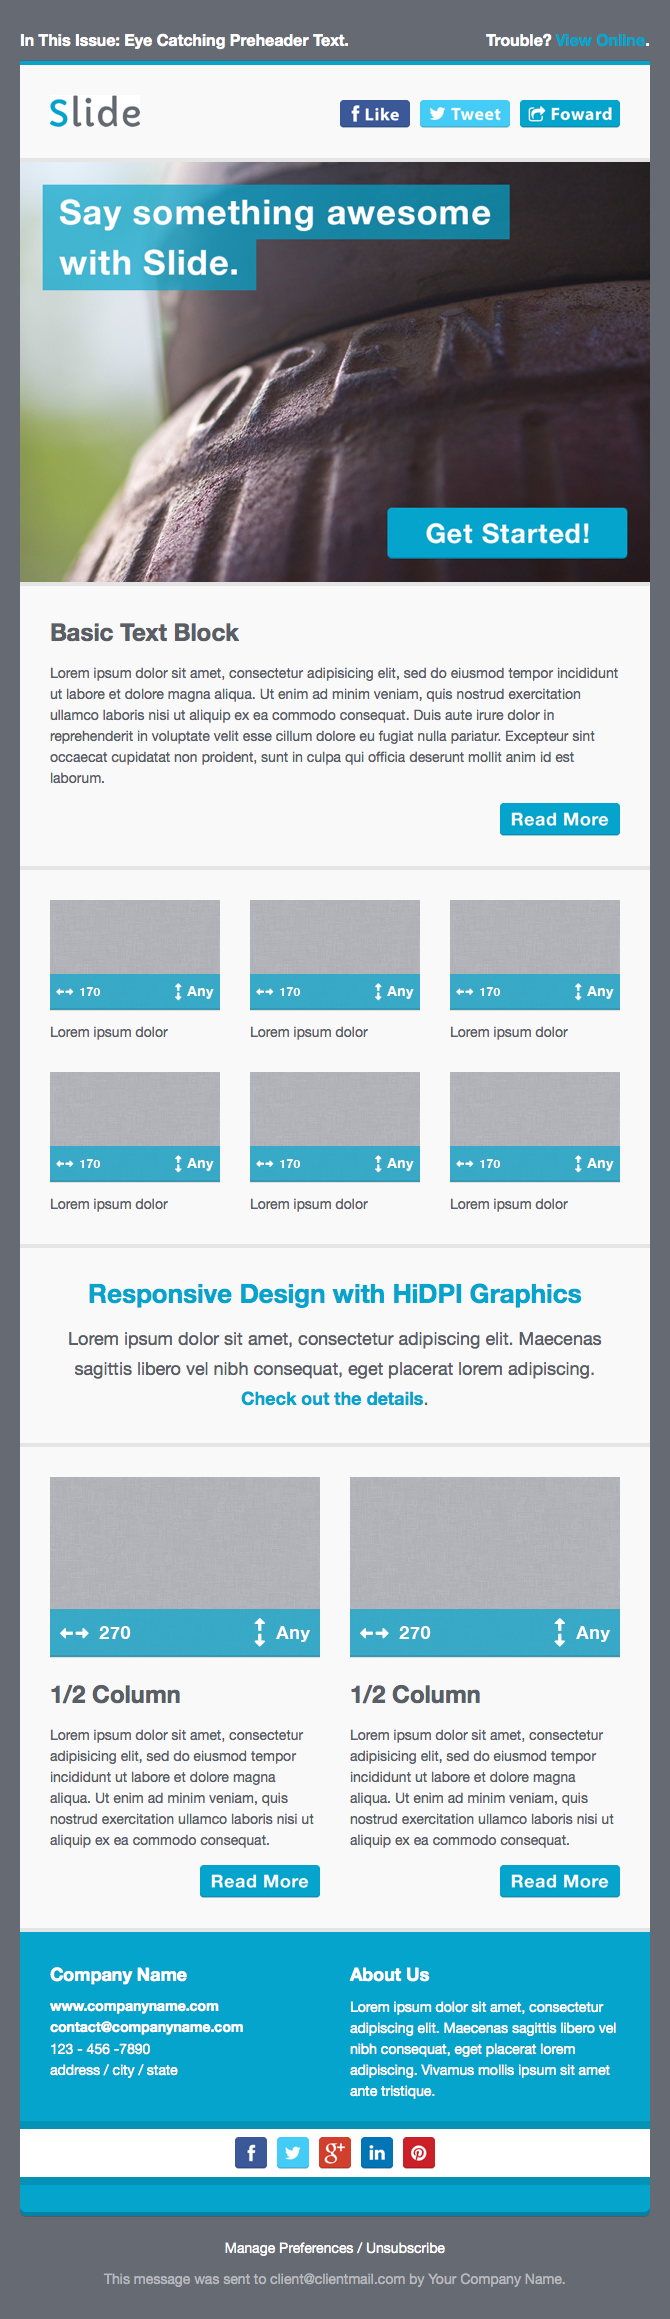 Slide Responsive Email Template By Creekjumper ThemeForest - 2 column responsive email template